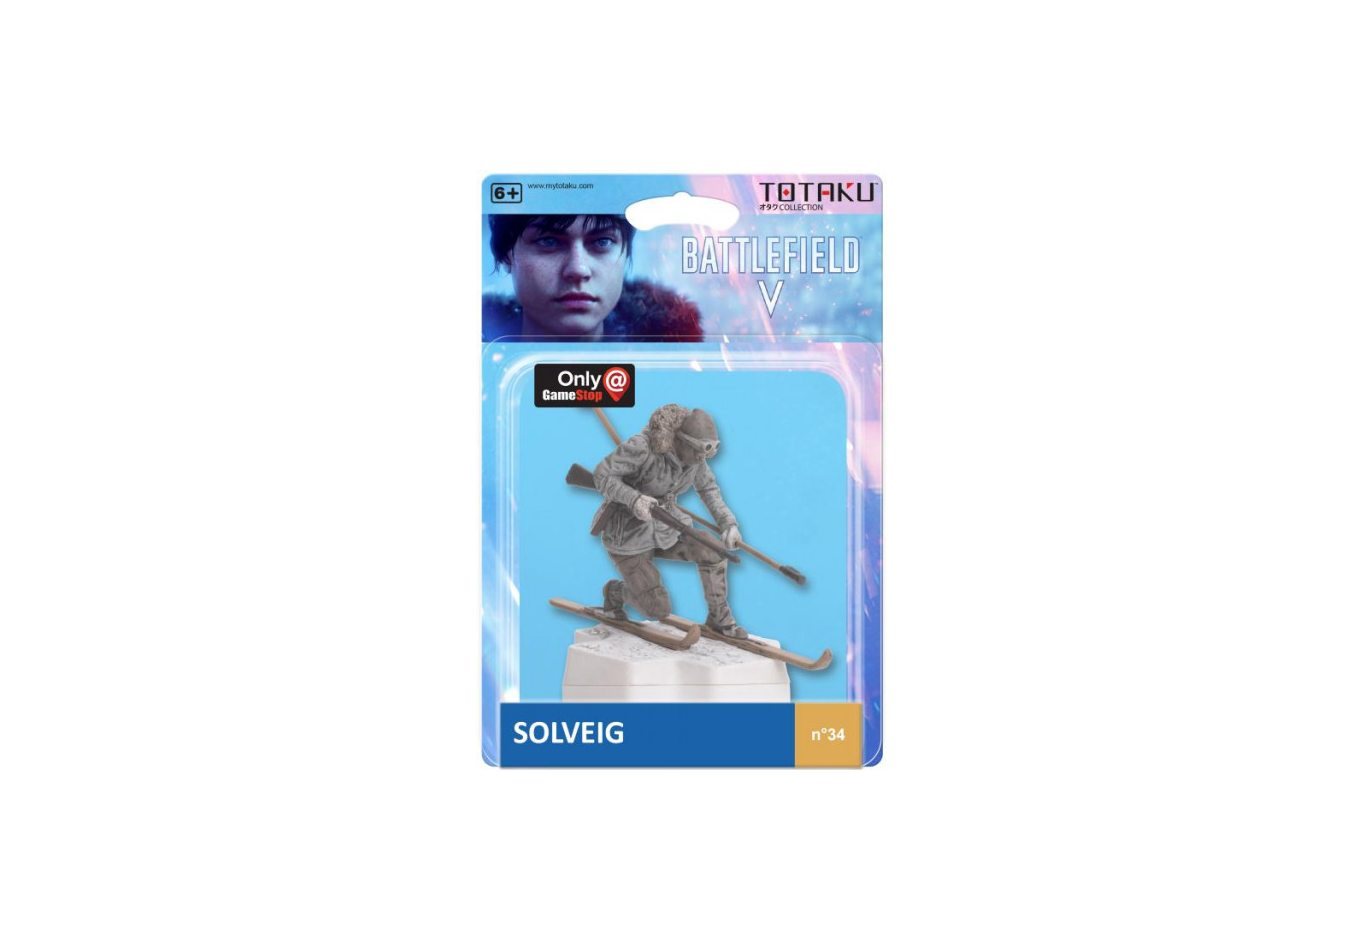 Фигурка TOTAKU Collection: Battlefield V Solveig 10 см